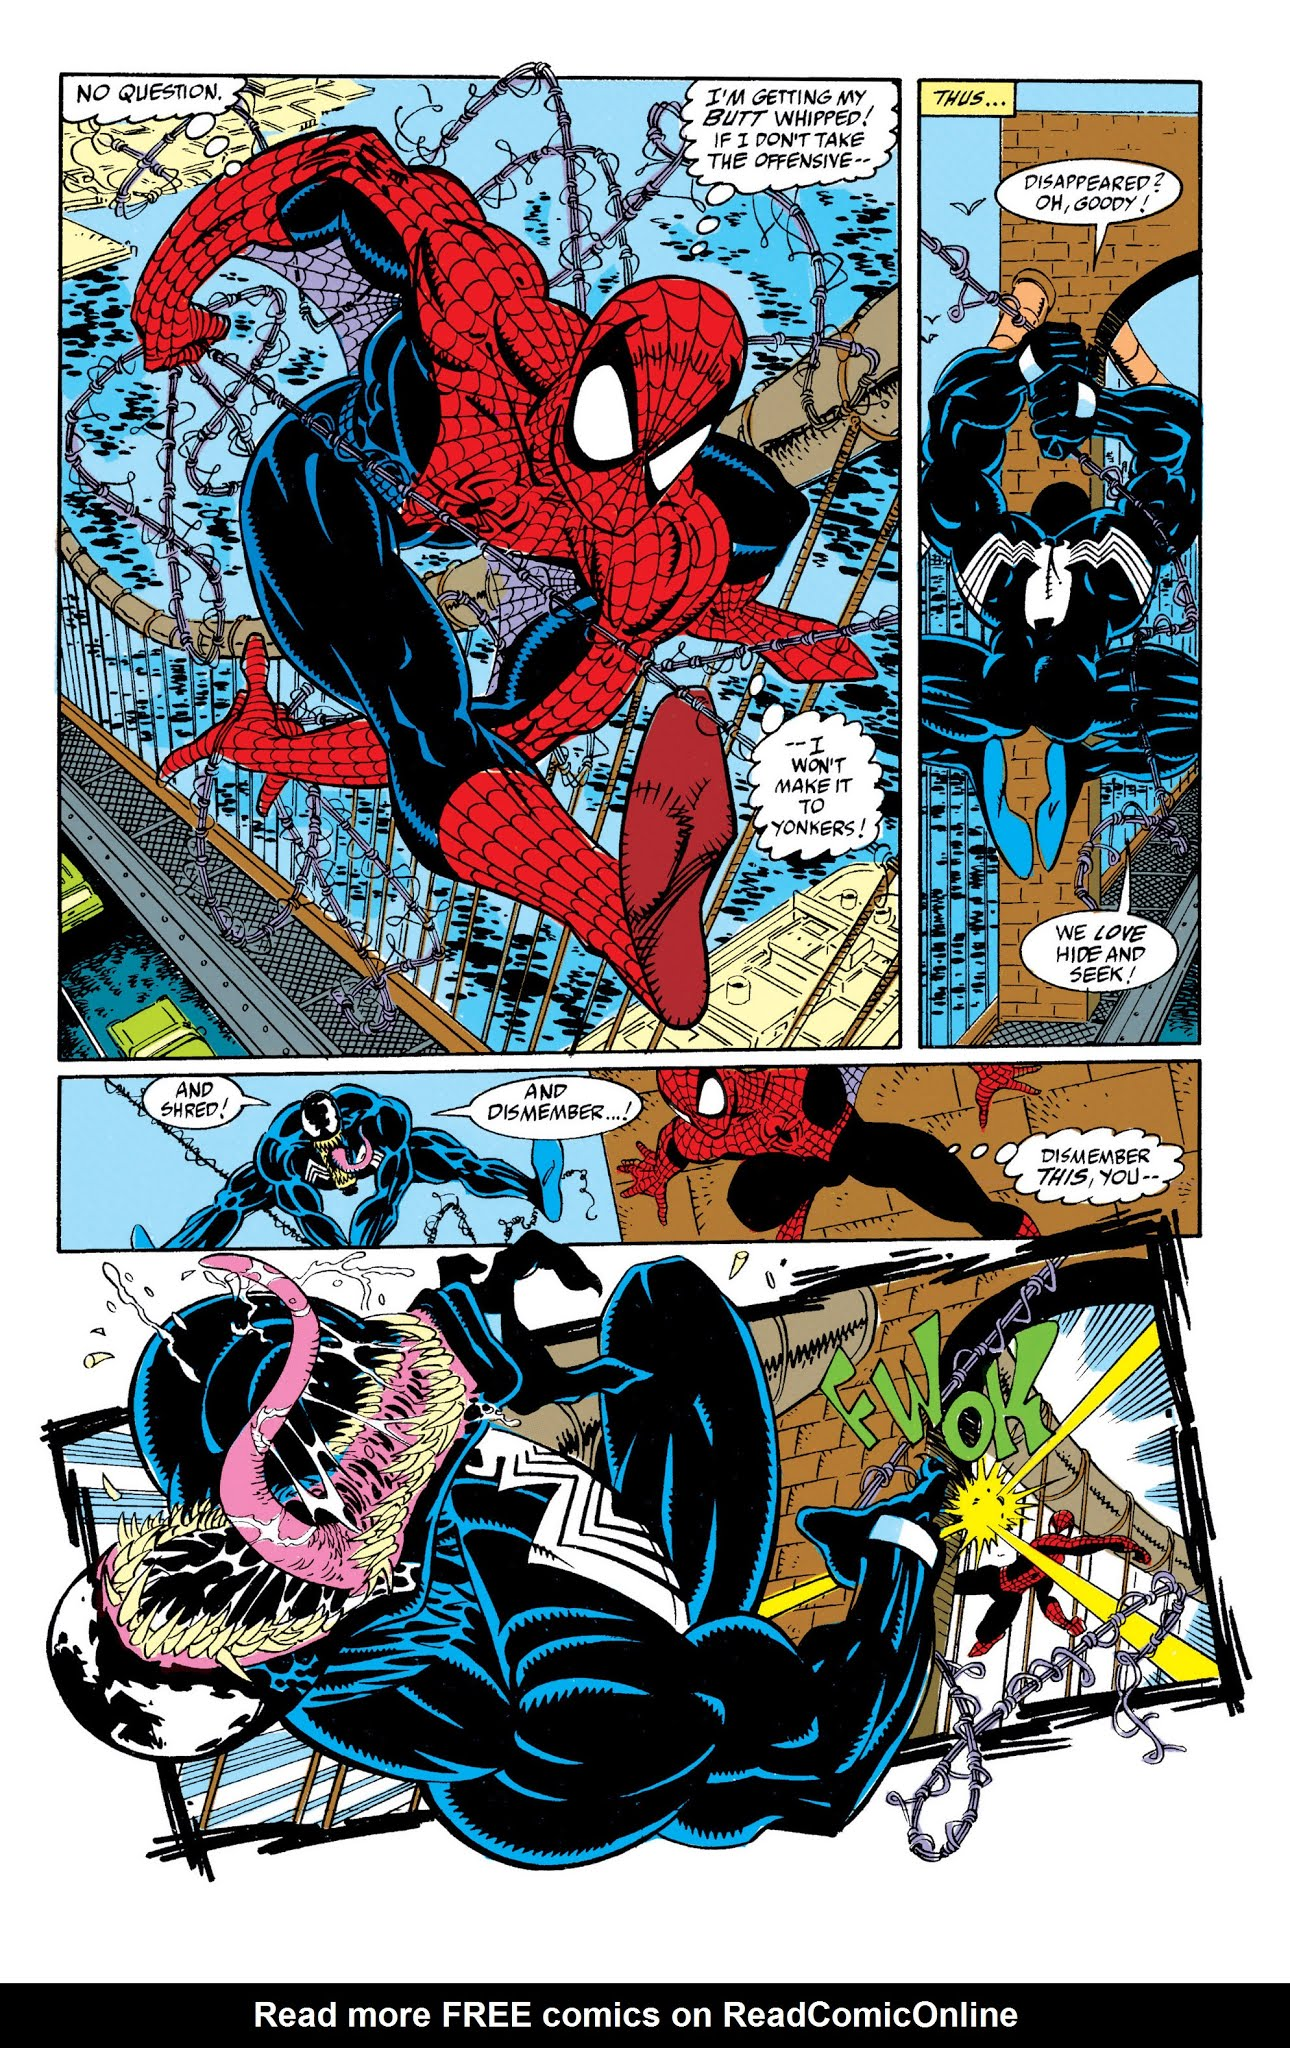 Amazing Spider-Man Epic Collection #Return_of_the_Sinister_Six_(